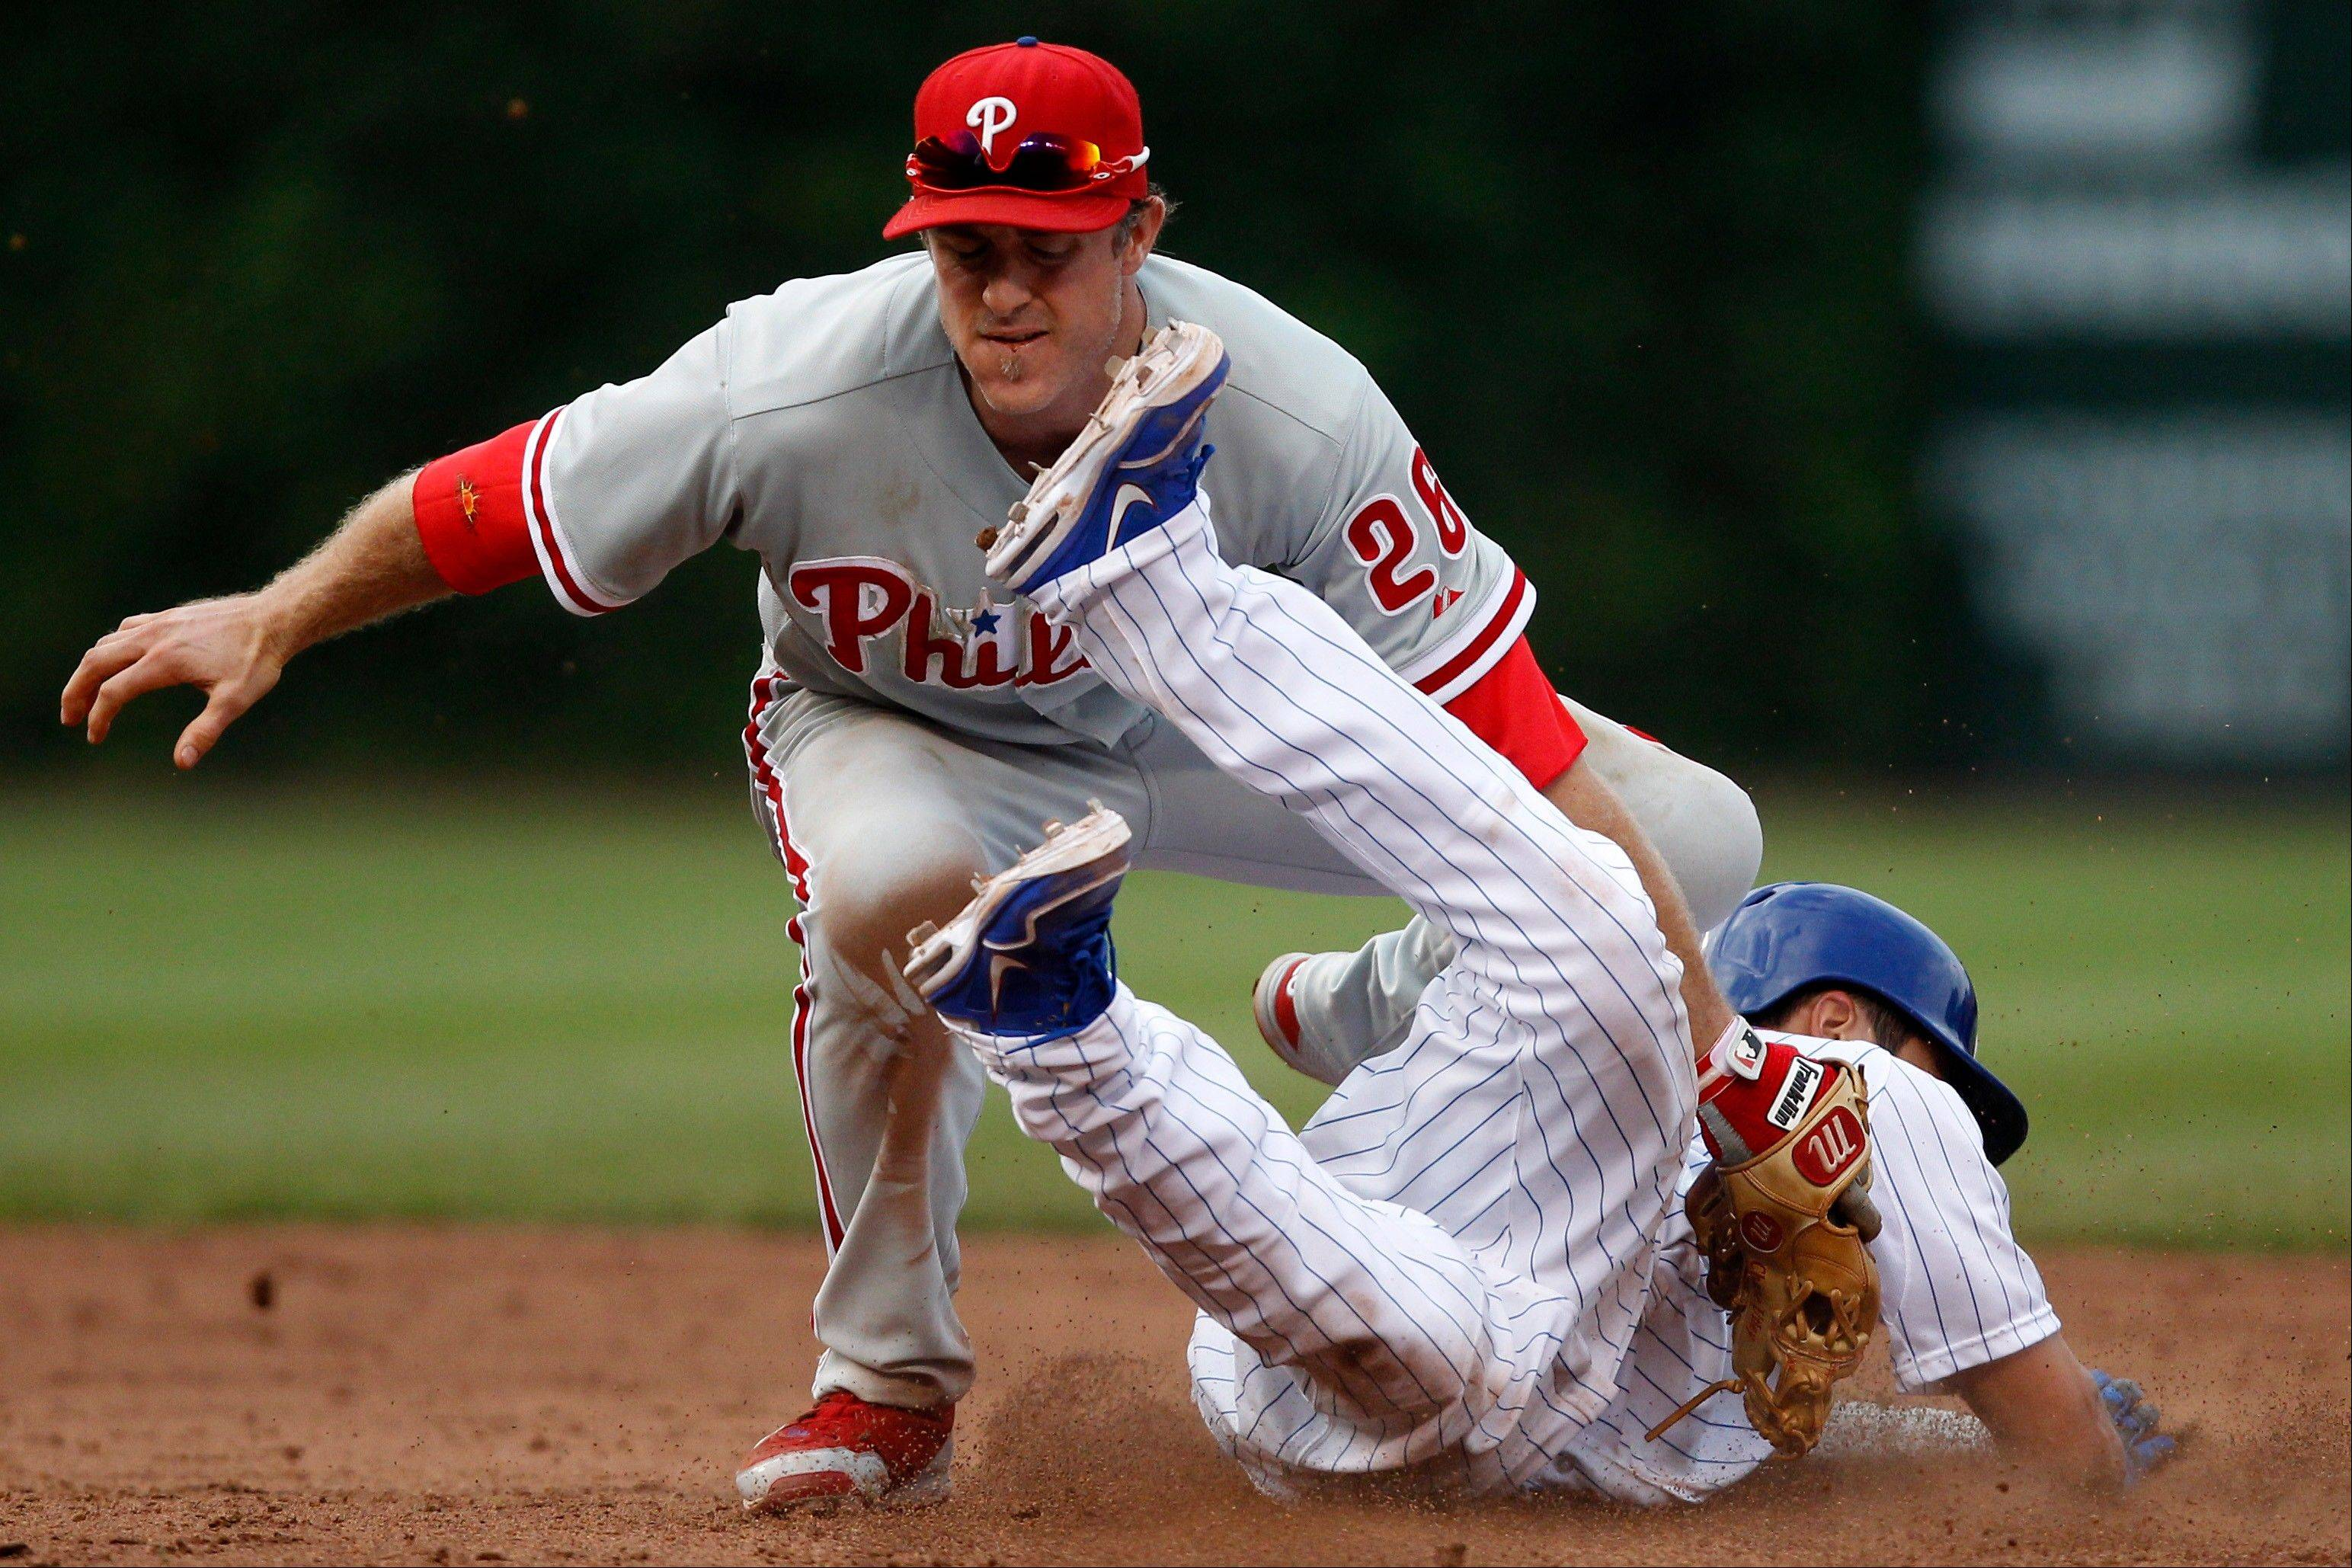 Darwin Barney safely steals second base under Philadelphia Phillies second baseman Chase Utley during the sixth inning.